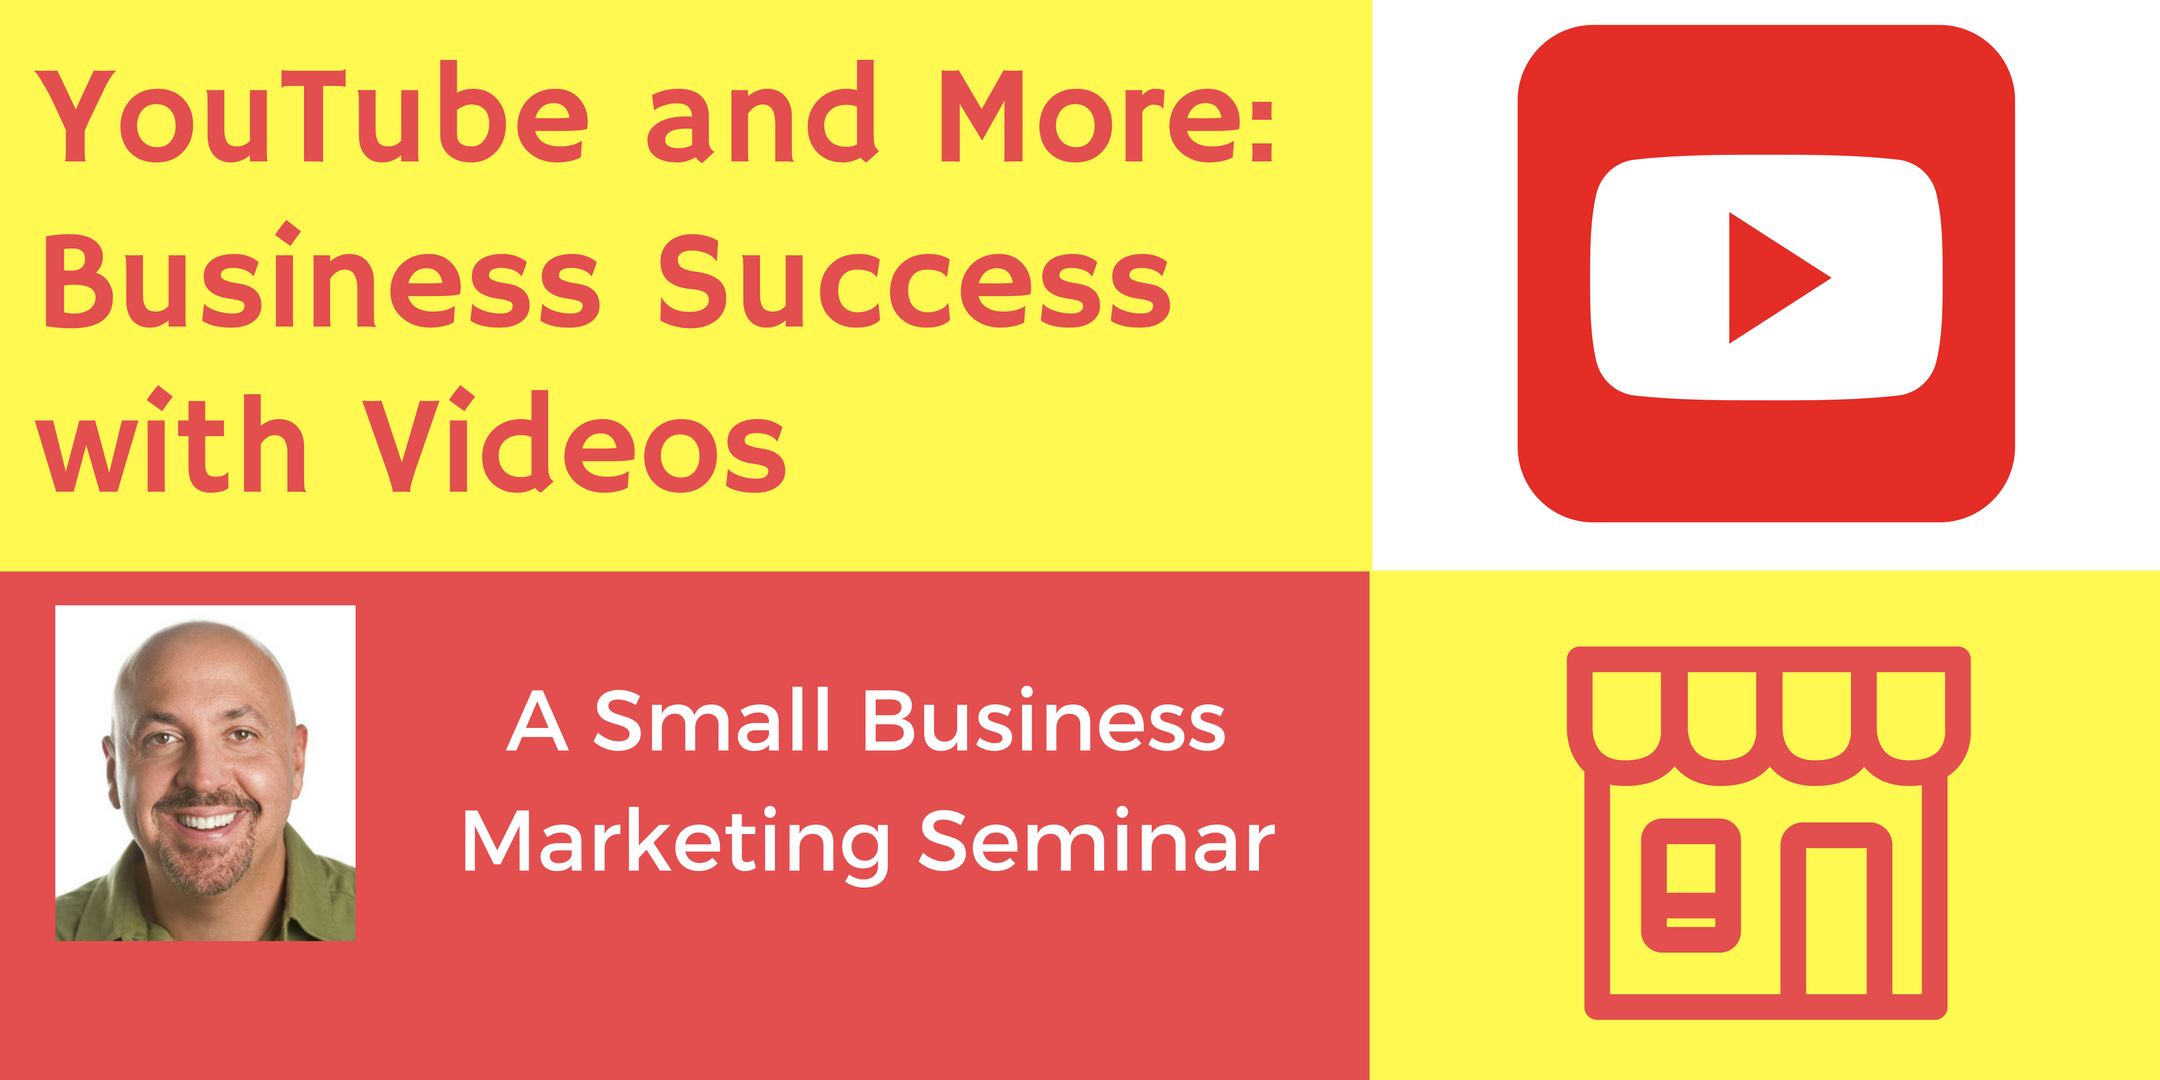 YouTube and More: Business Success with Video